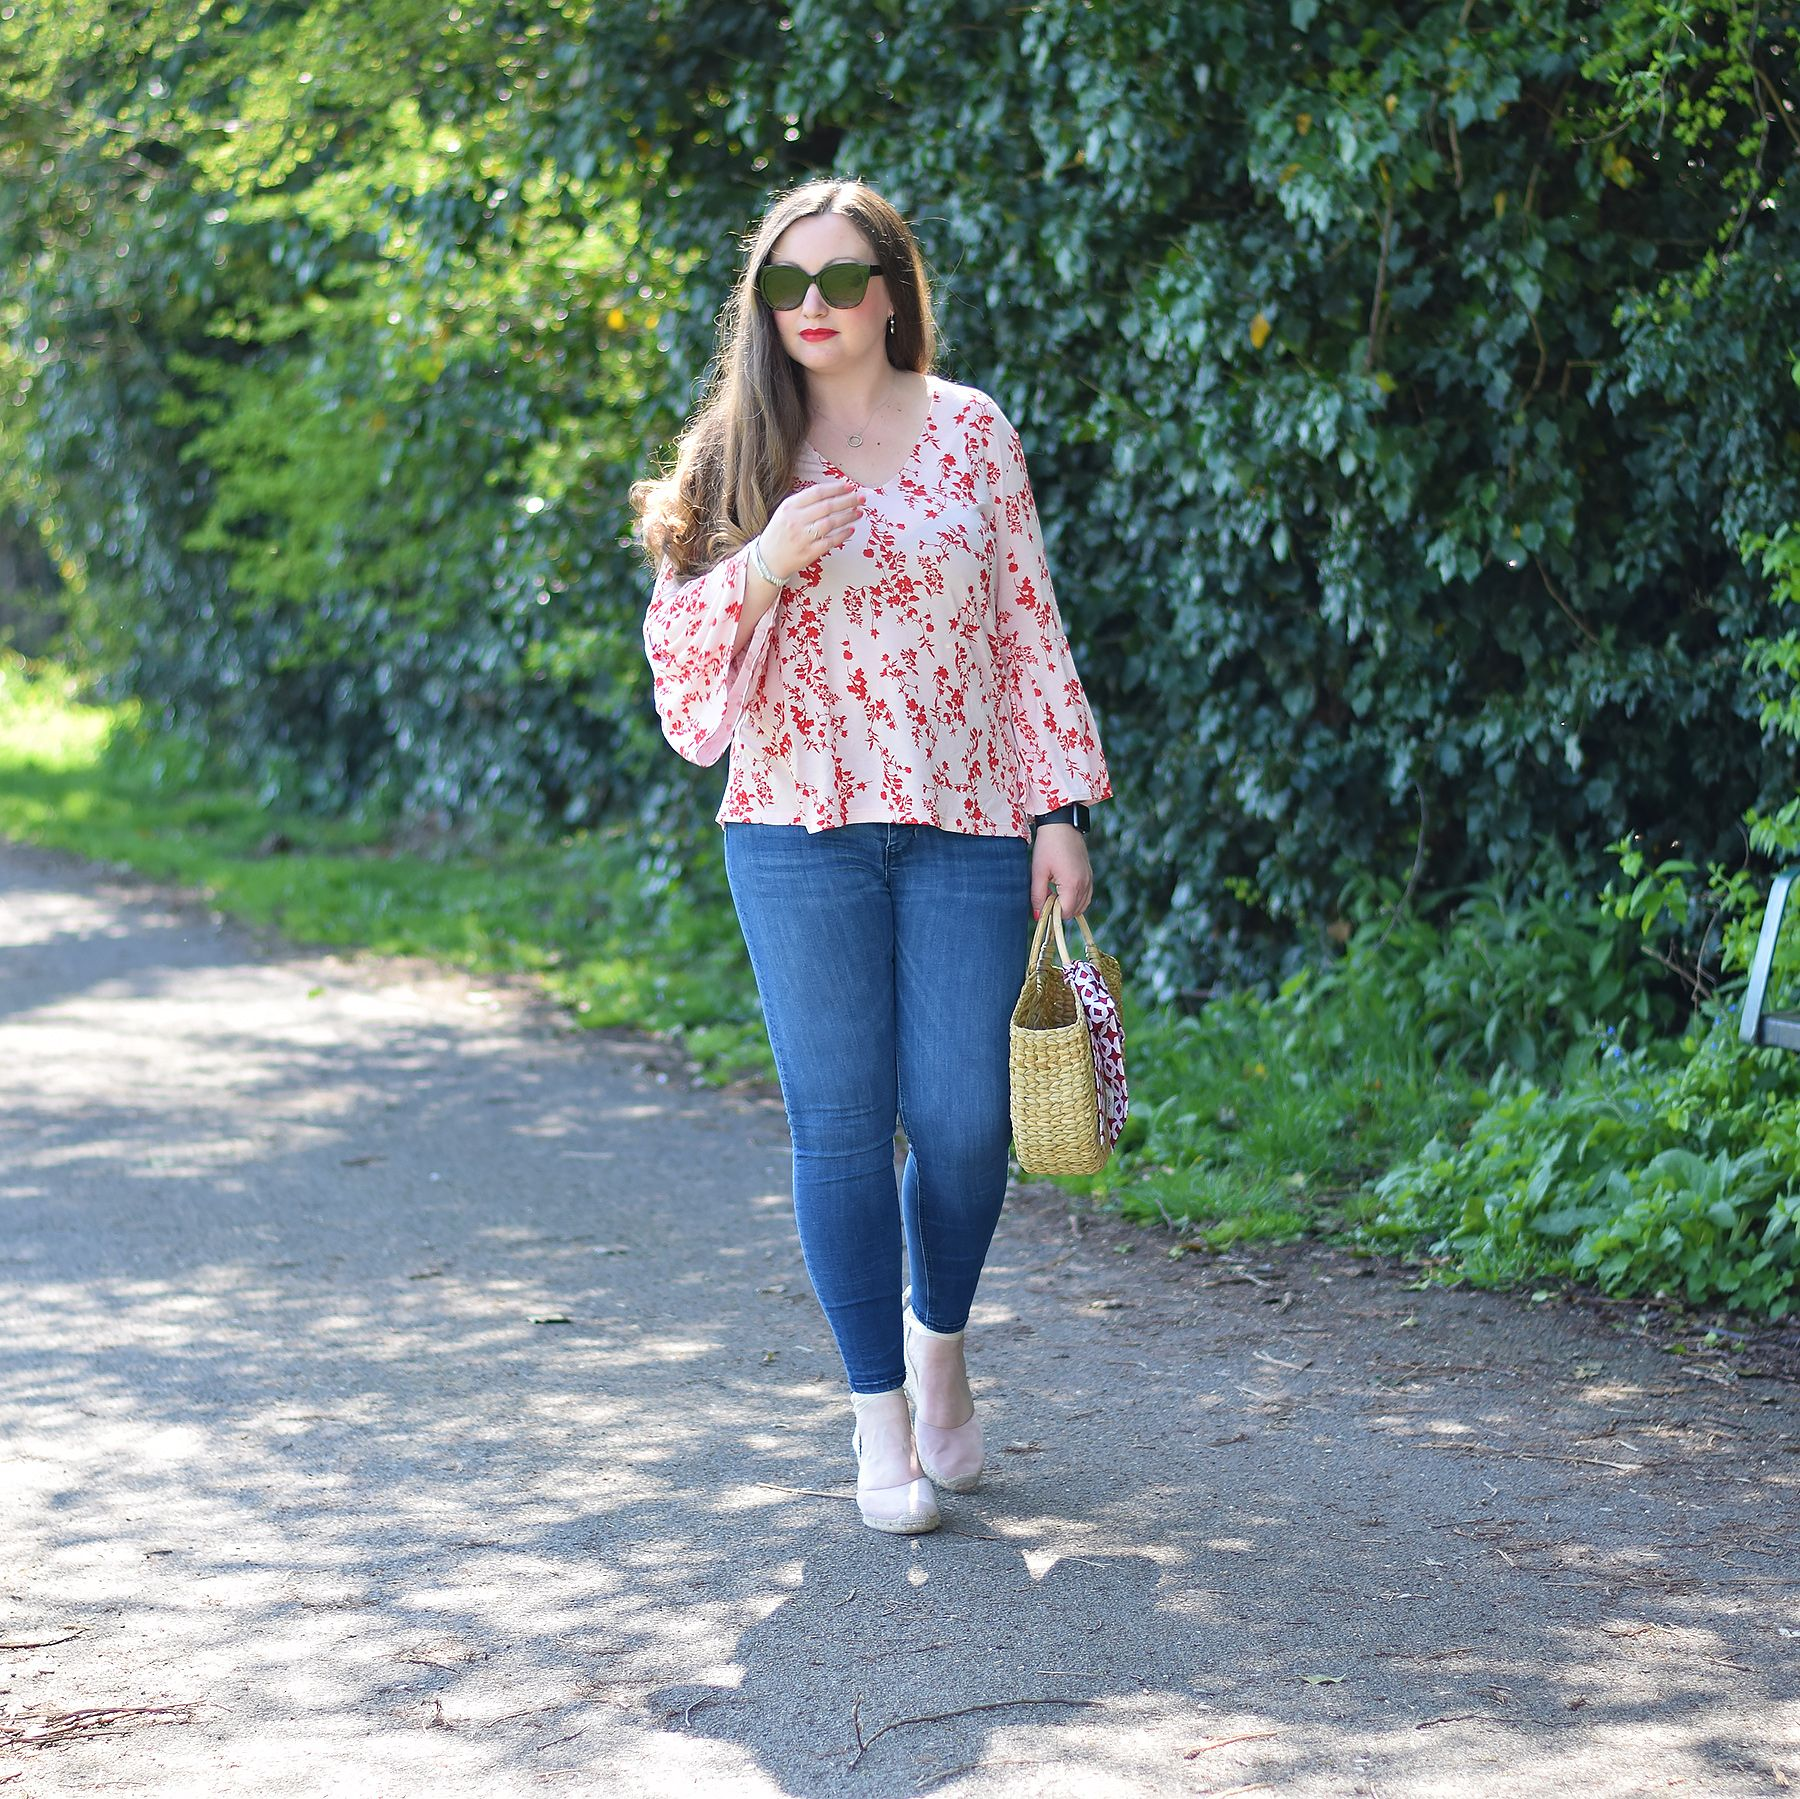 05bf4a7278d86 Pink And Red Floral Top Outfit - Spring outfits - Straw bag and espadrilles